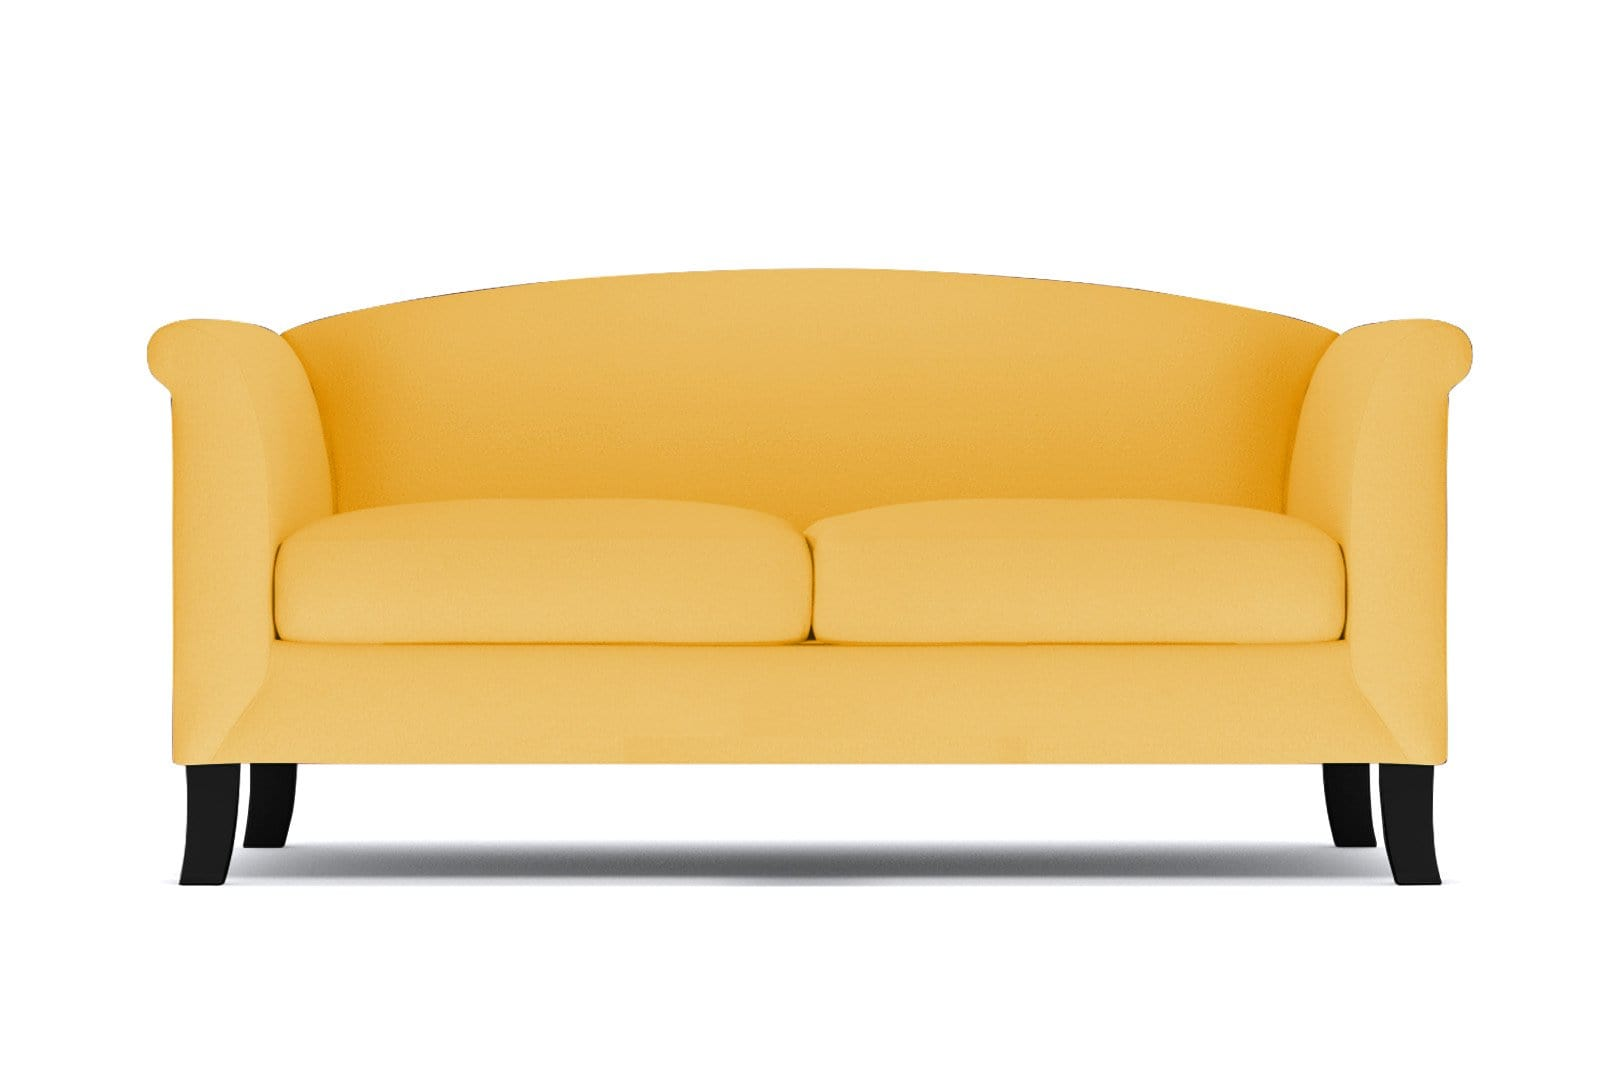 Albright_Apartment_Size_Sofa__Yellow_Velvet___Small_Space_Modern_Couch_Made_in_the_USA__Sold_by_Apt2B